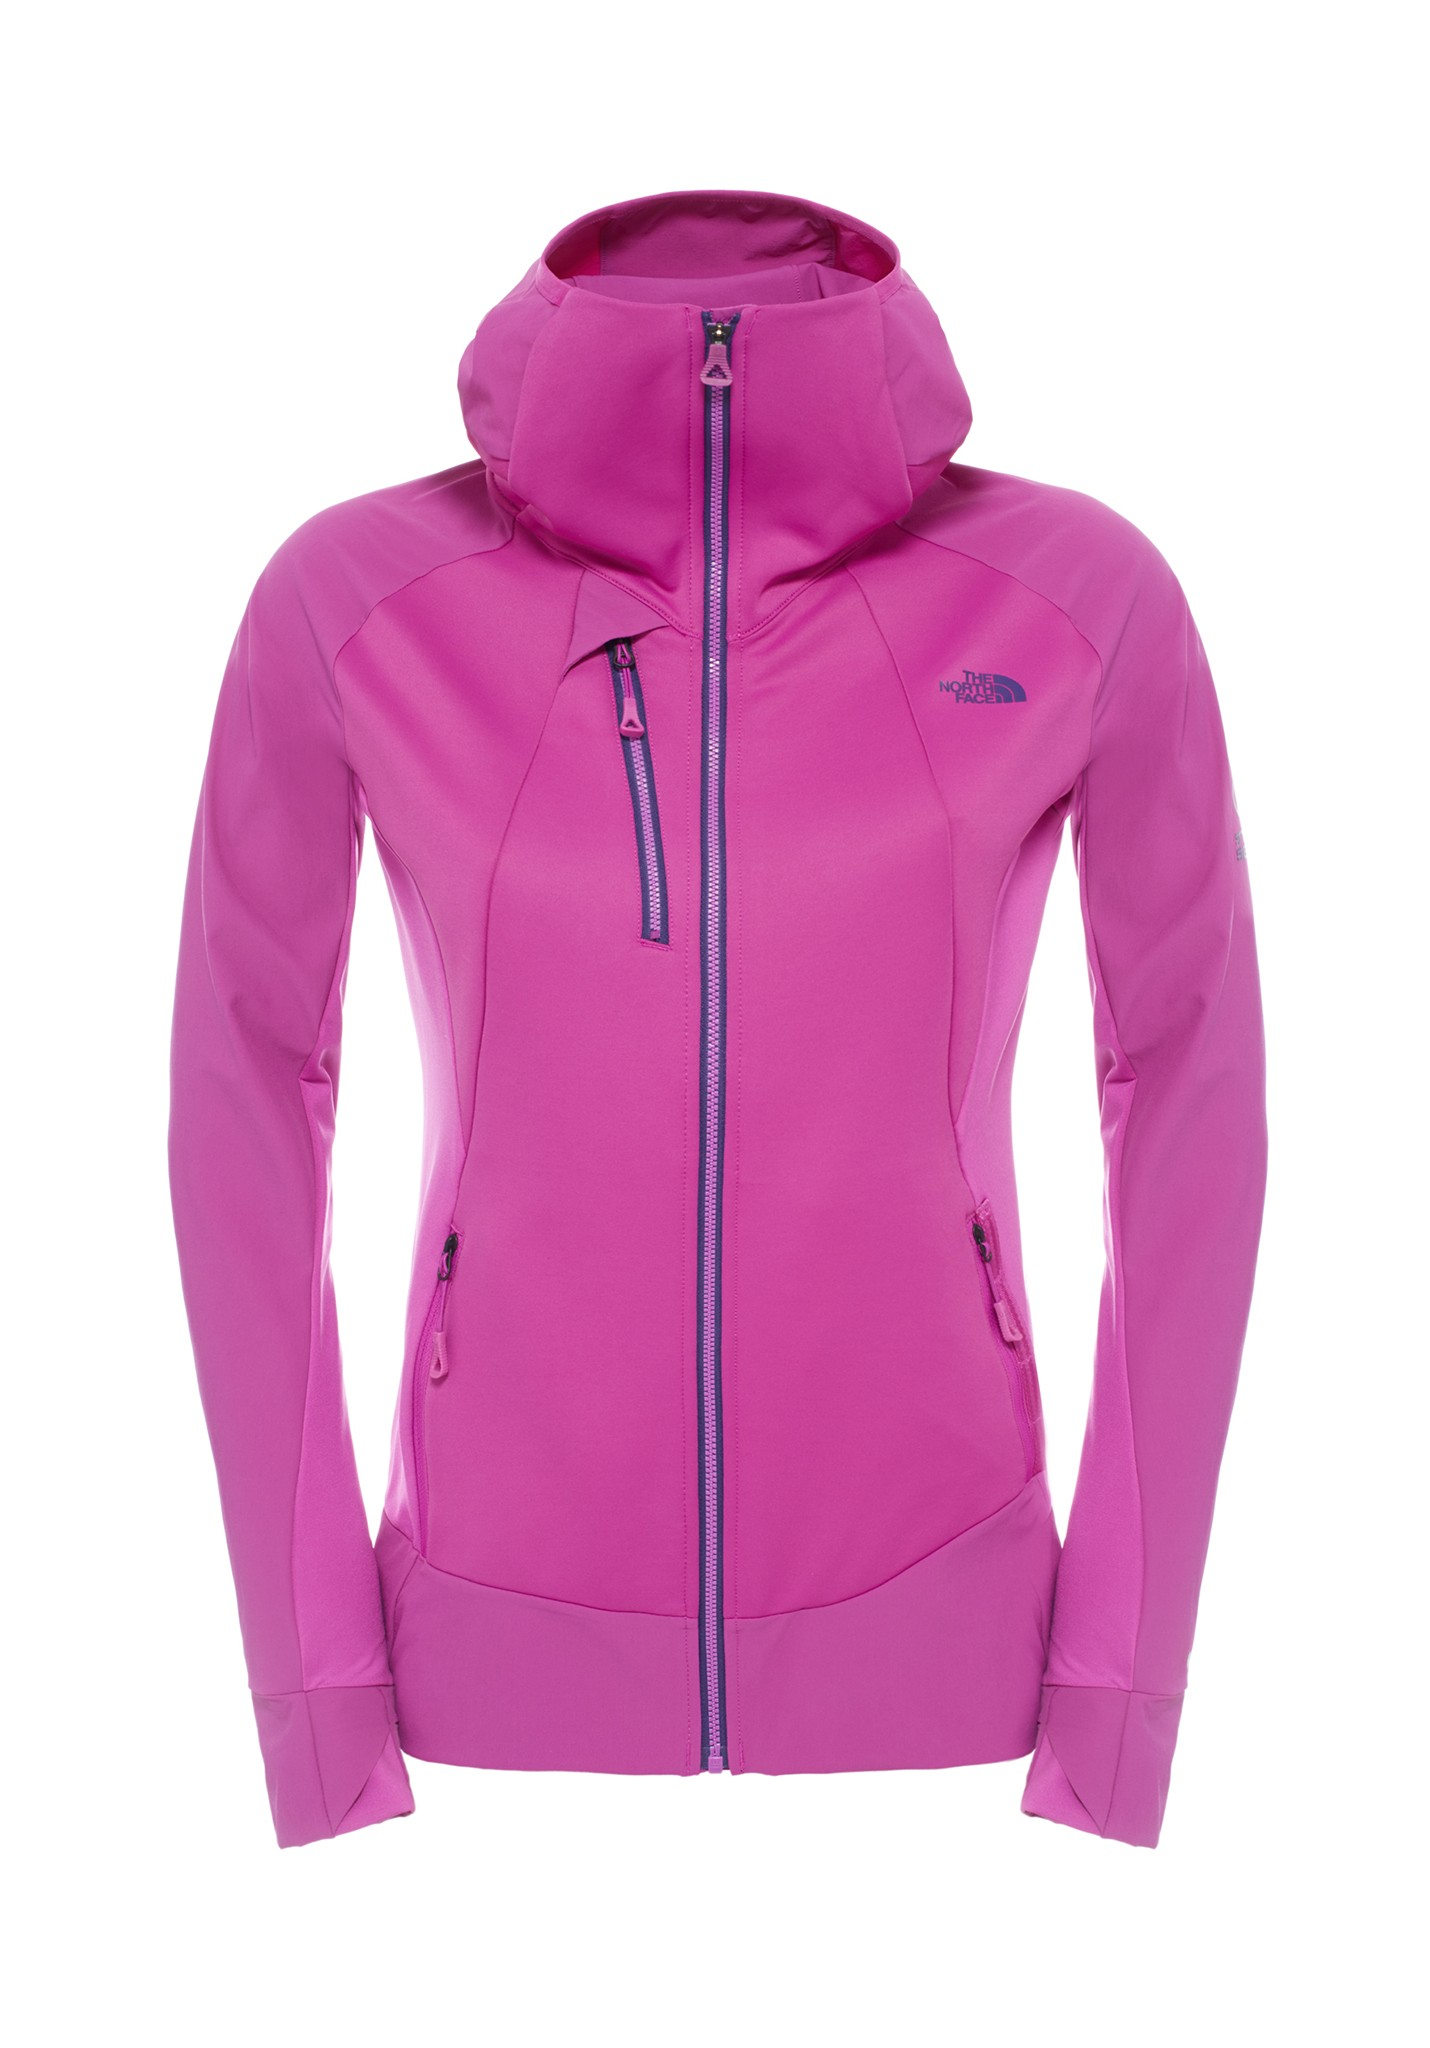 neu the north face jackster hybrid damen jacke ebay. Black Bedroom Furniture Sets. Home Design Ideas